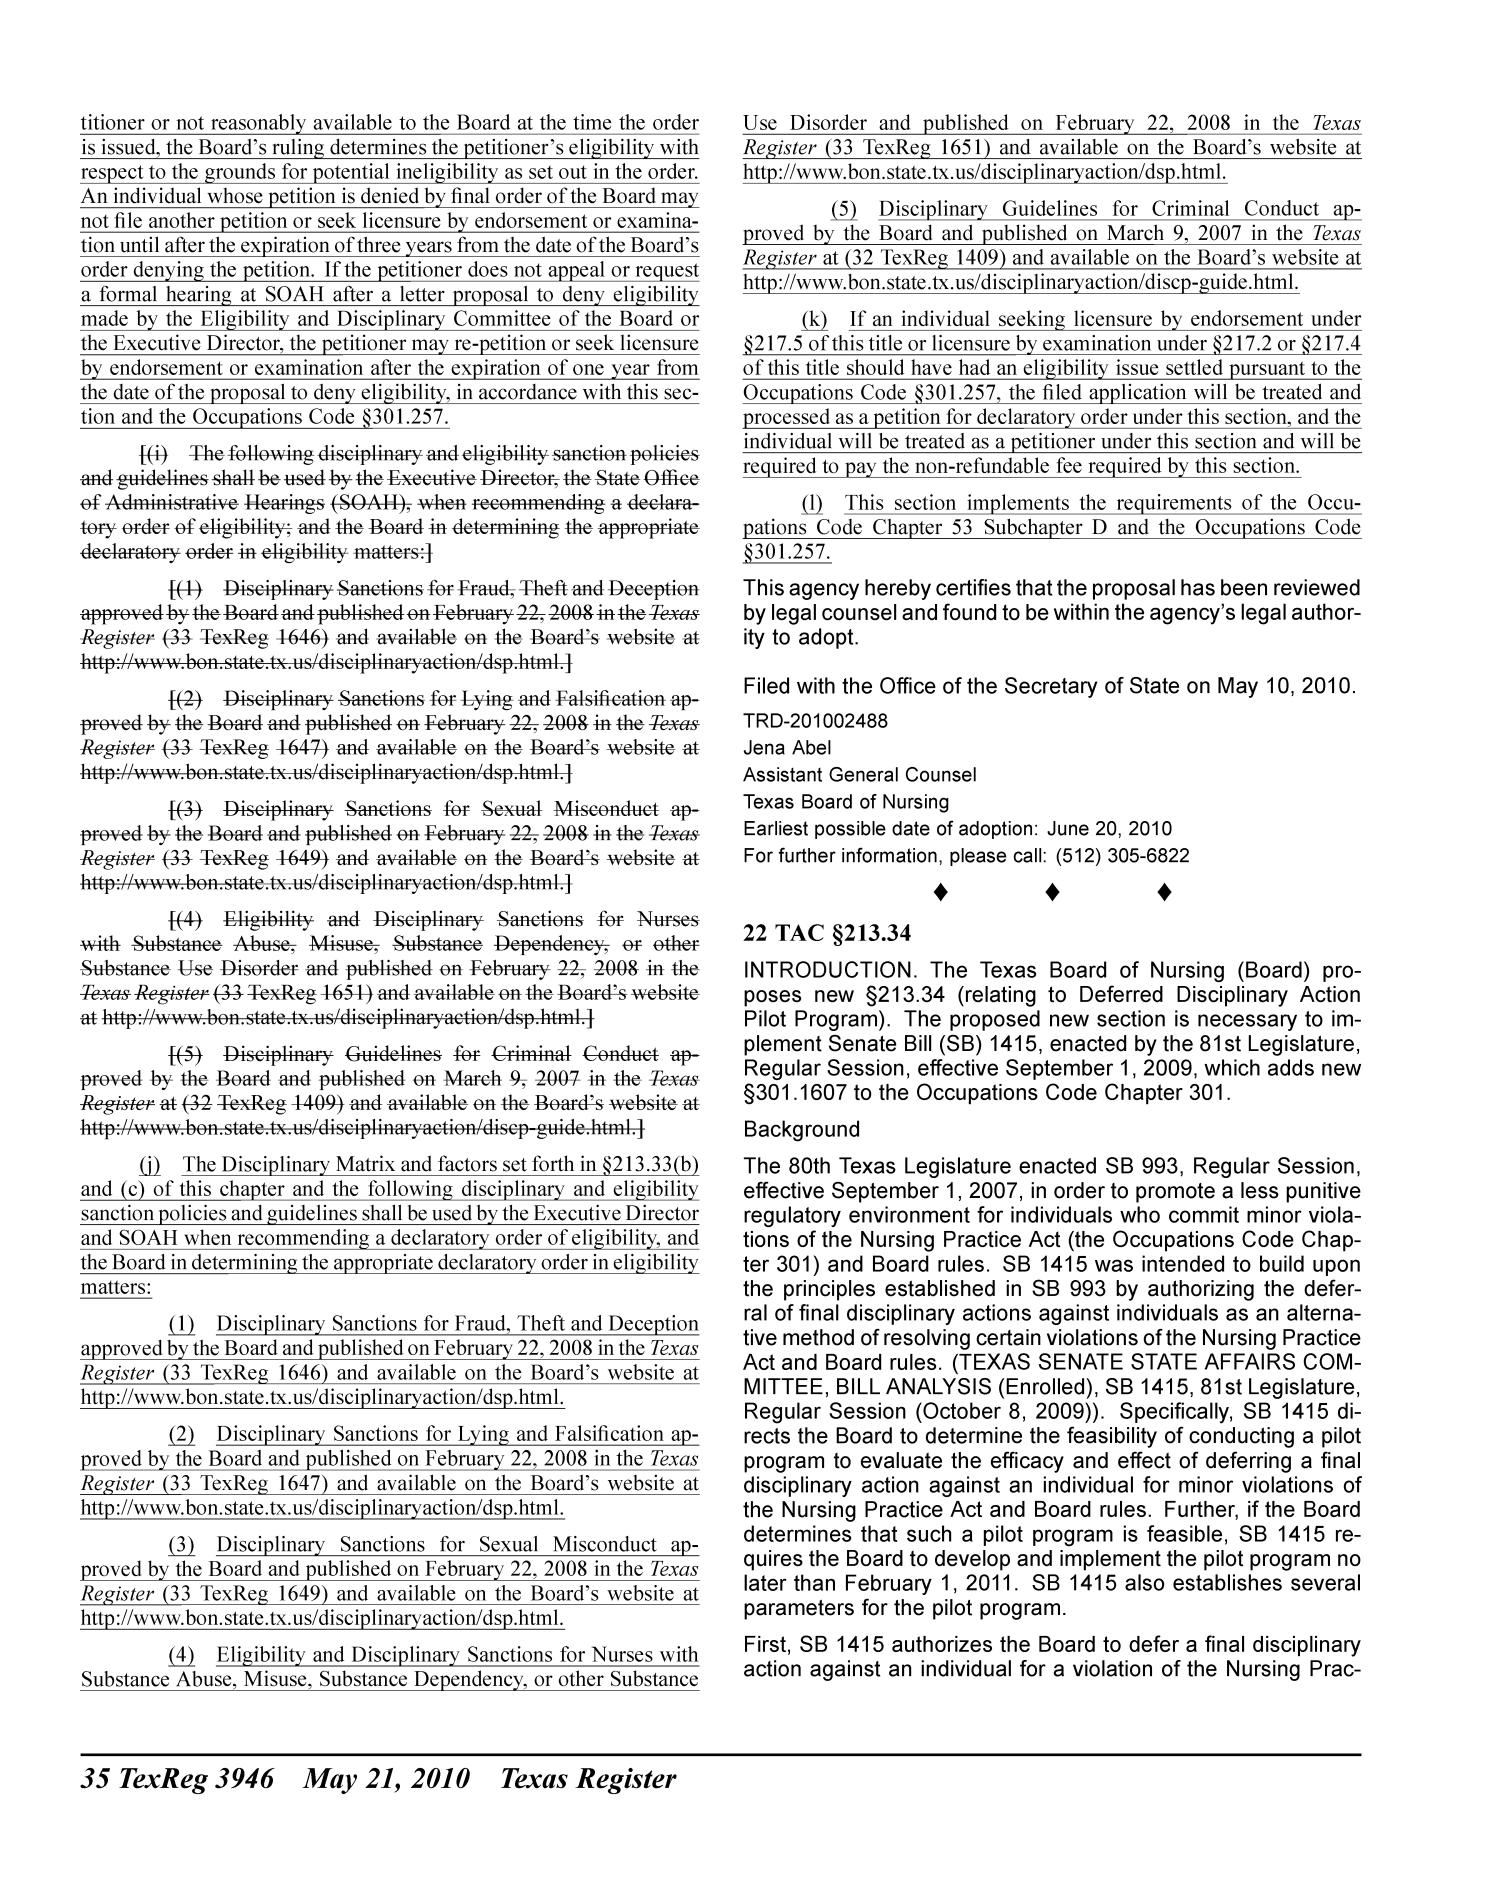 Texas Register, Volume 35, Number 21, Pages 3905-4274, May 21, 2010                                                                                                      3946